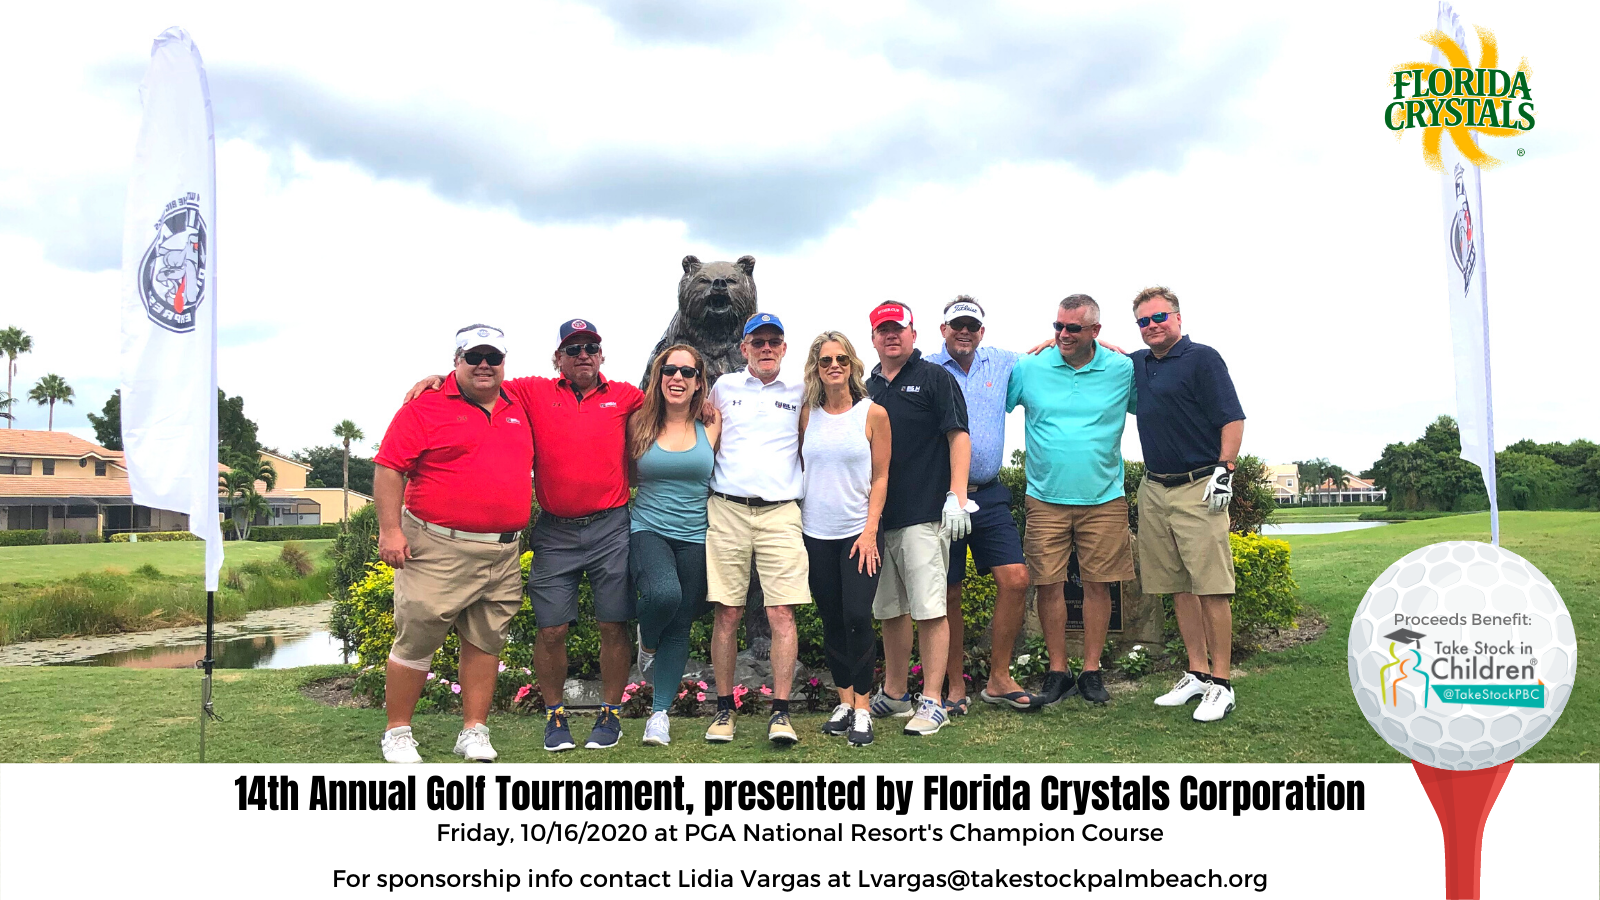 14th Annual Golf Tournament, presented by Florida Crystals Corporation (2)